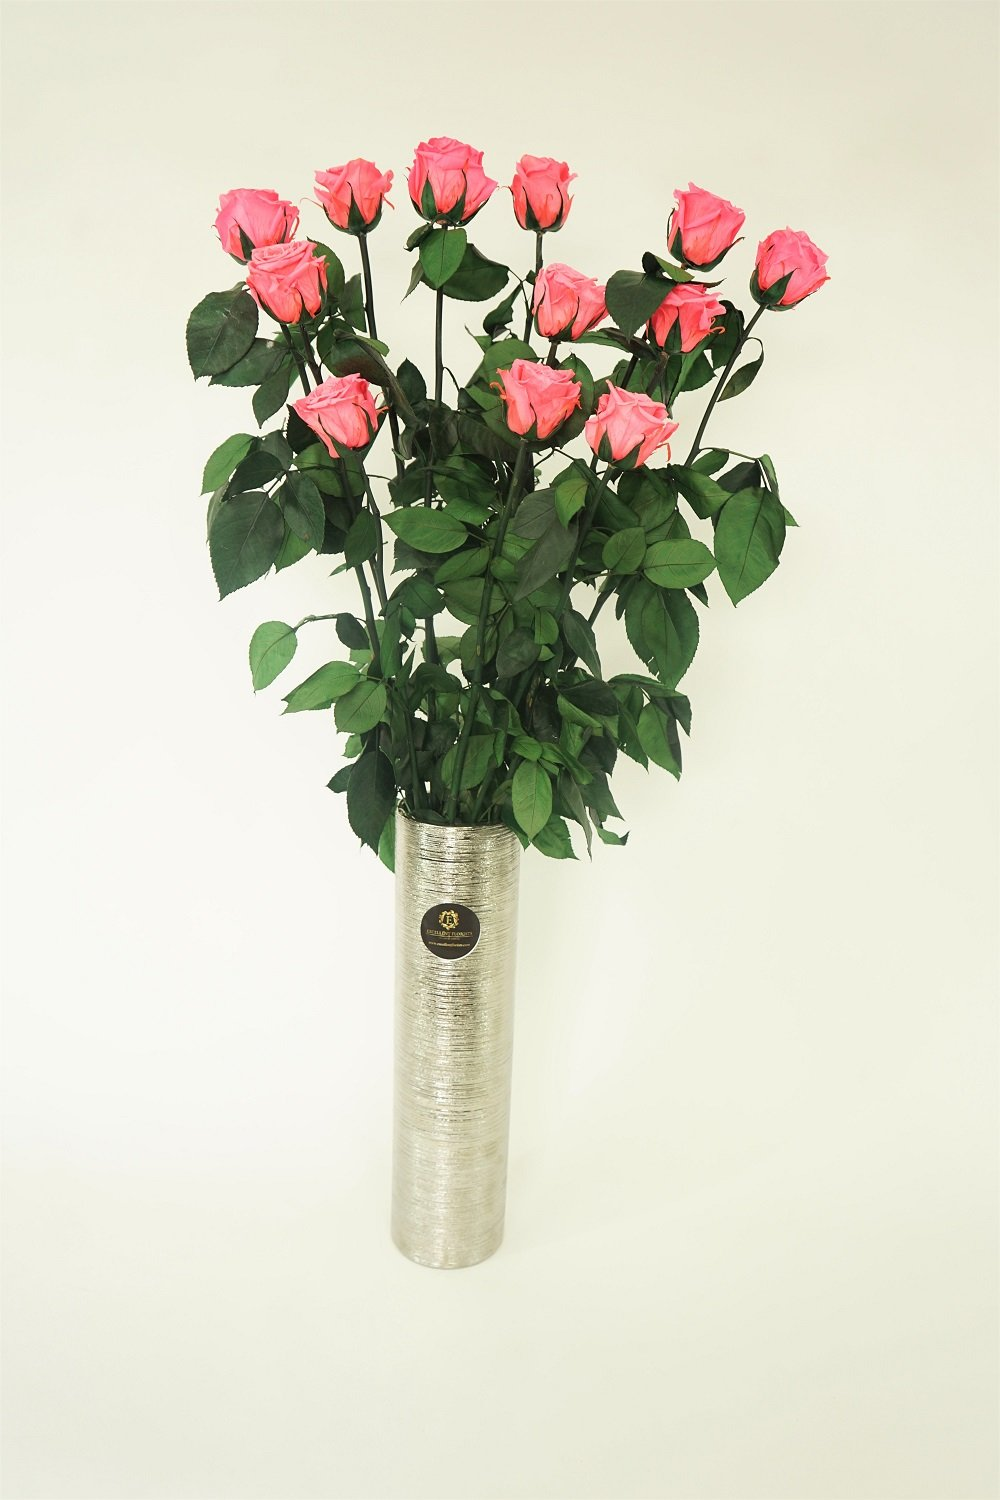 12 LONG STEM PINK   PRESERVED ROSES LUXURY BOUQUET IN GLASS VASE - Excellent Florists